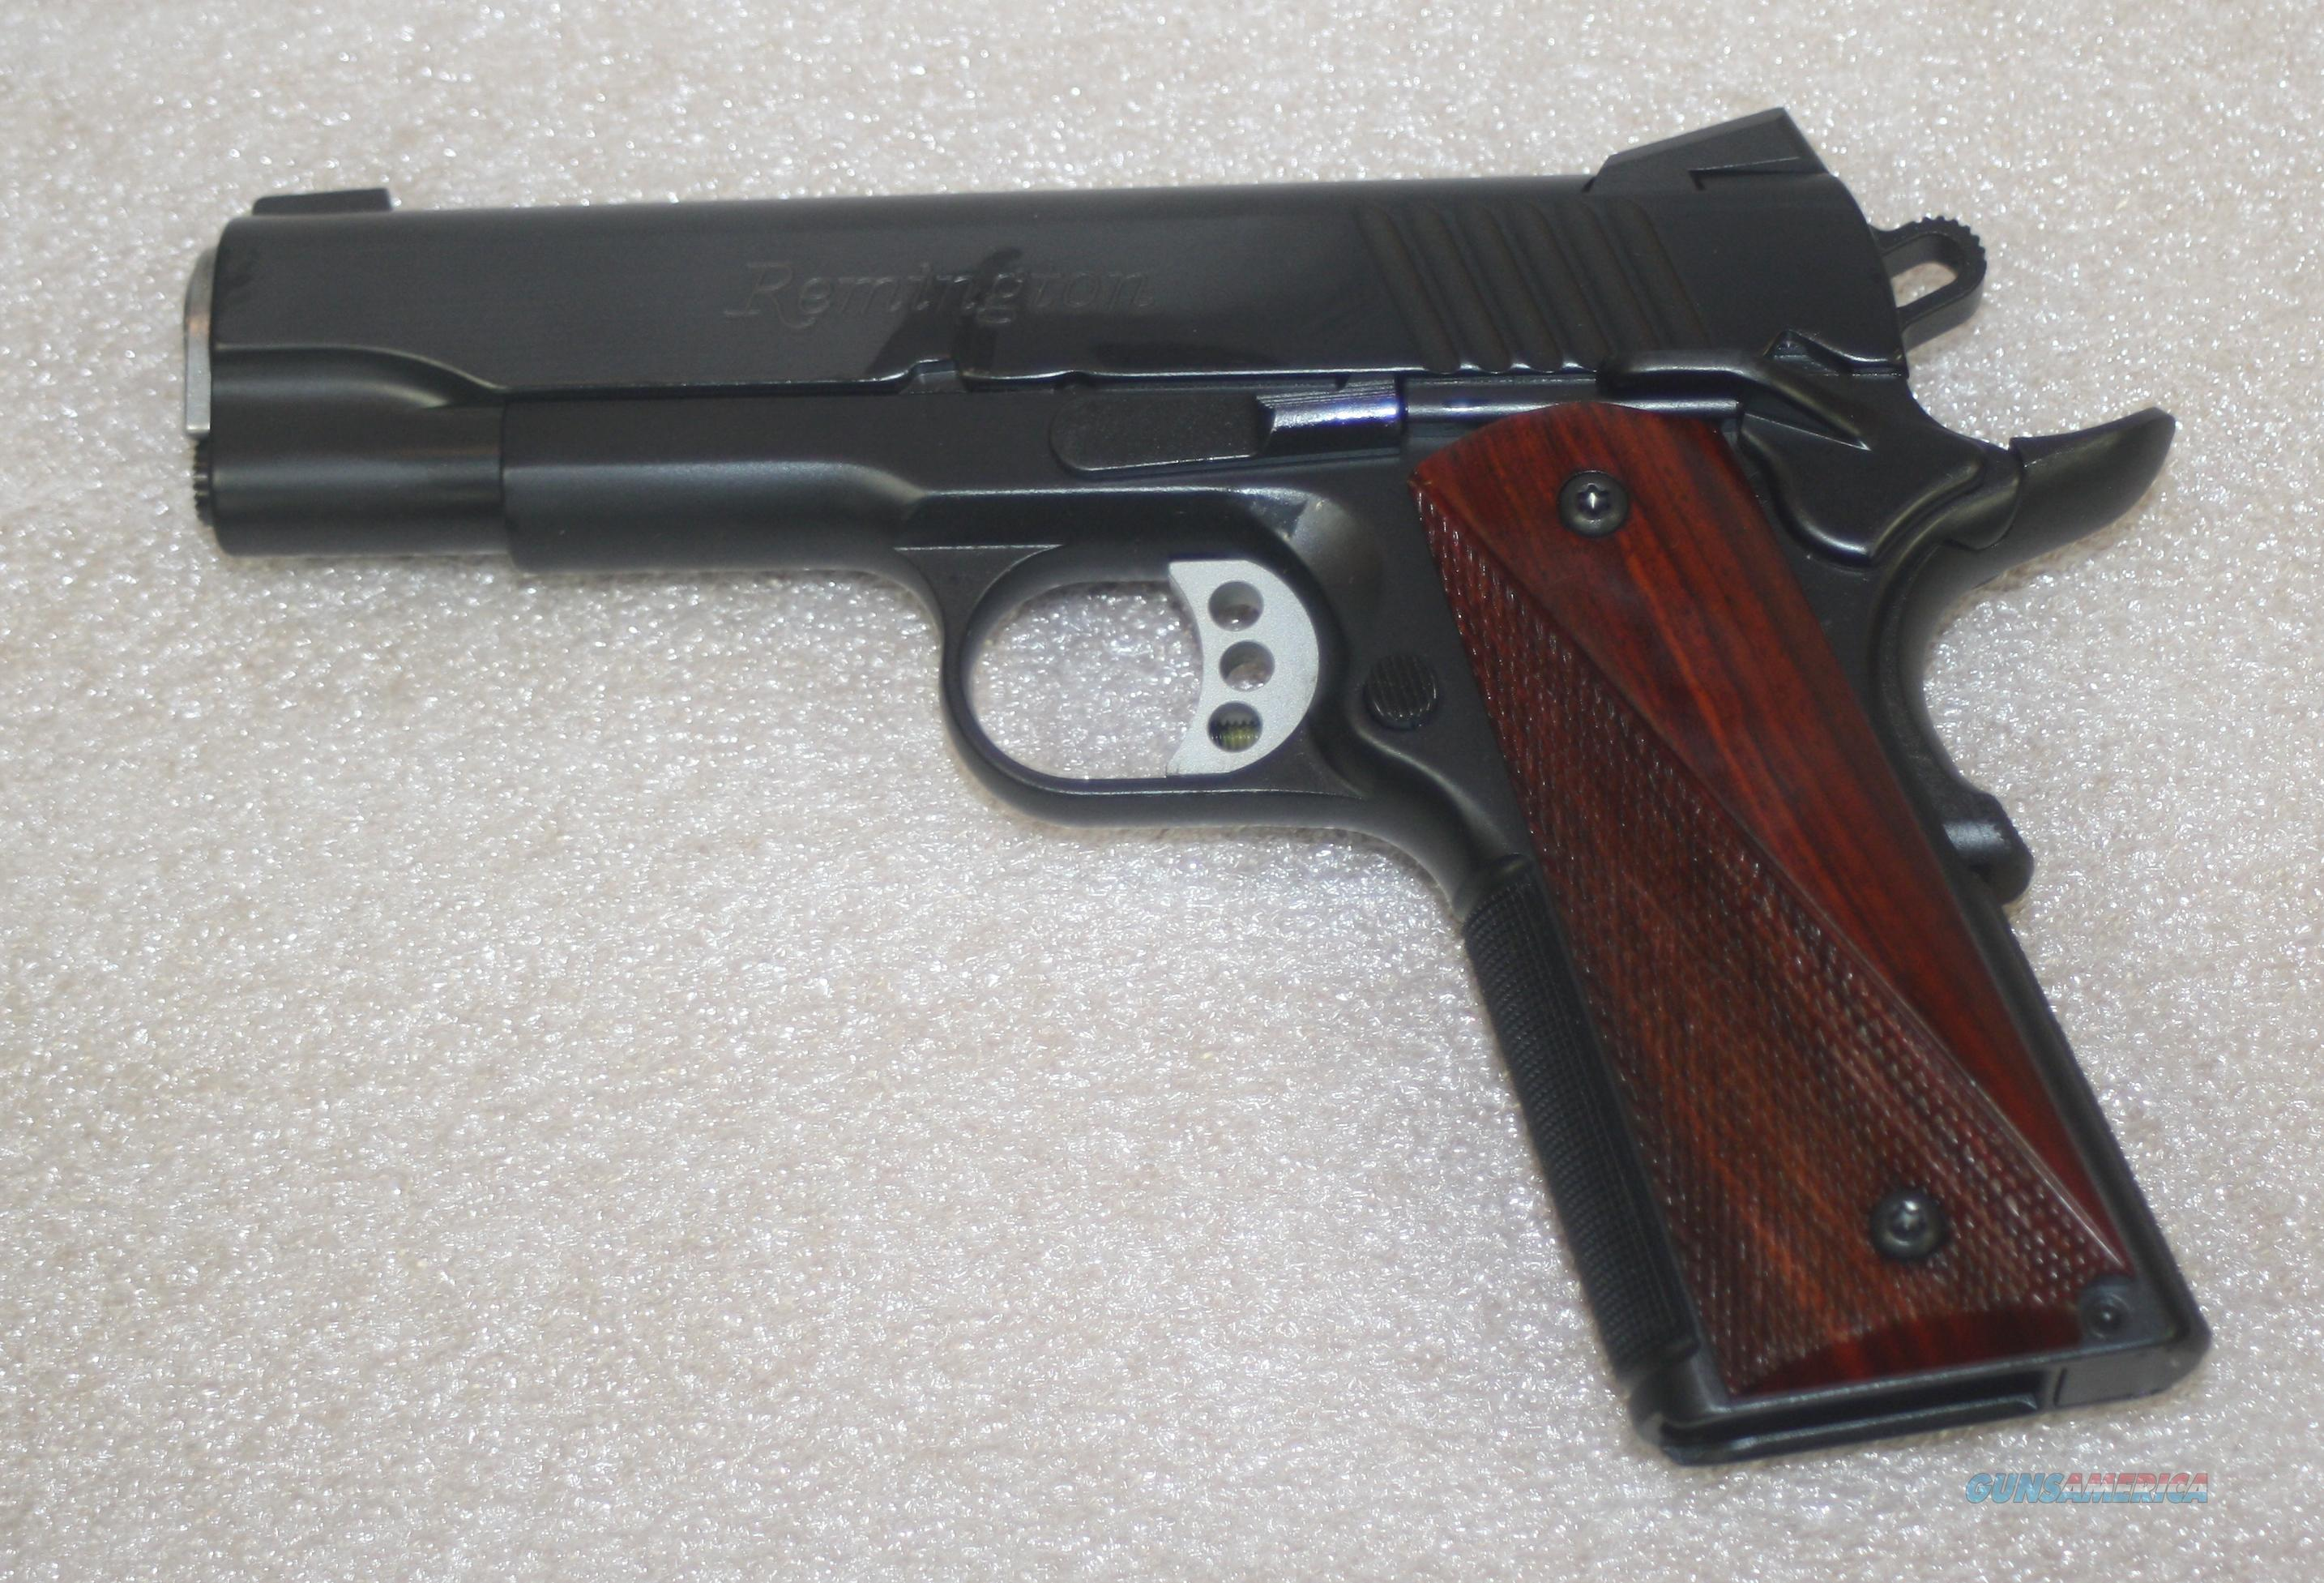 REMINGTON 1911 R1 CARRY COMMANDER 45ACP  Guns > Pistols > Remington Pistols - Modern